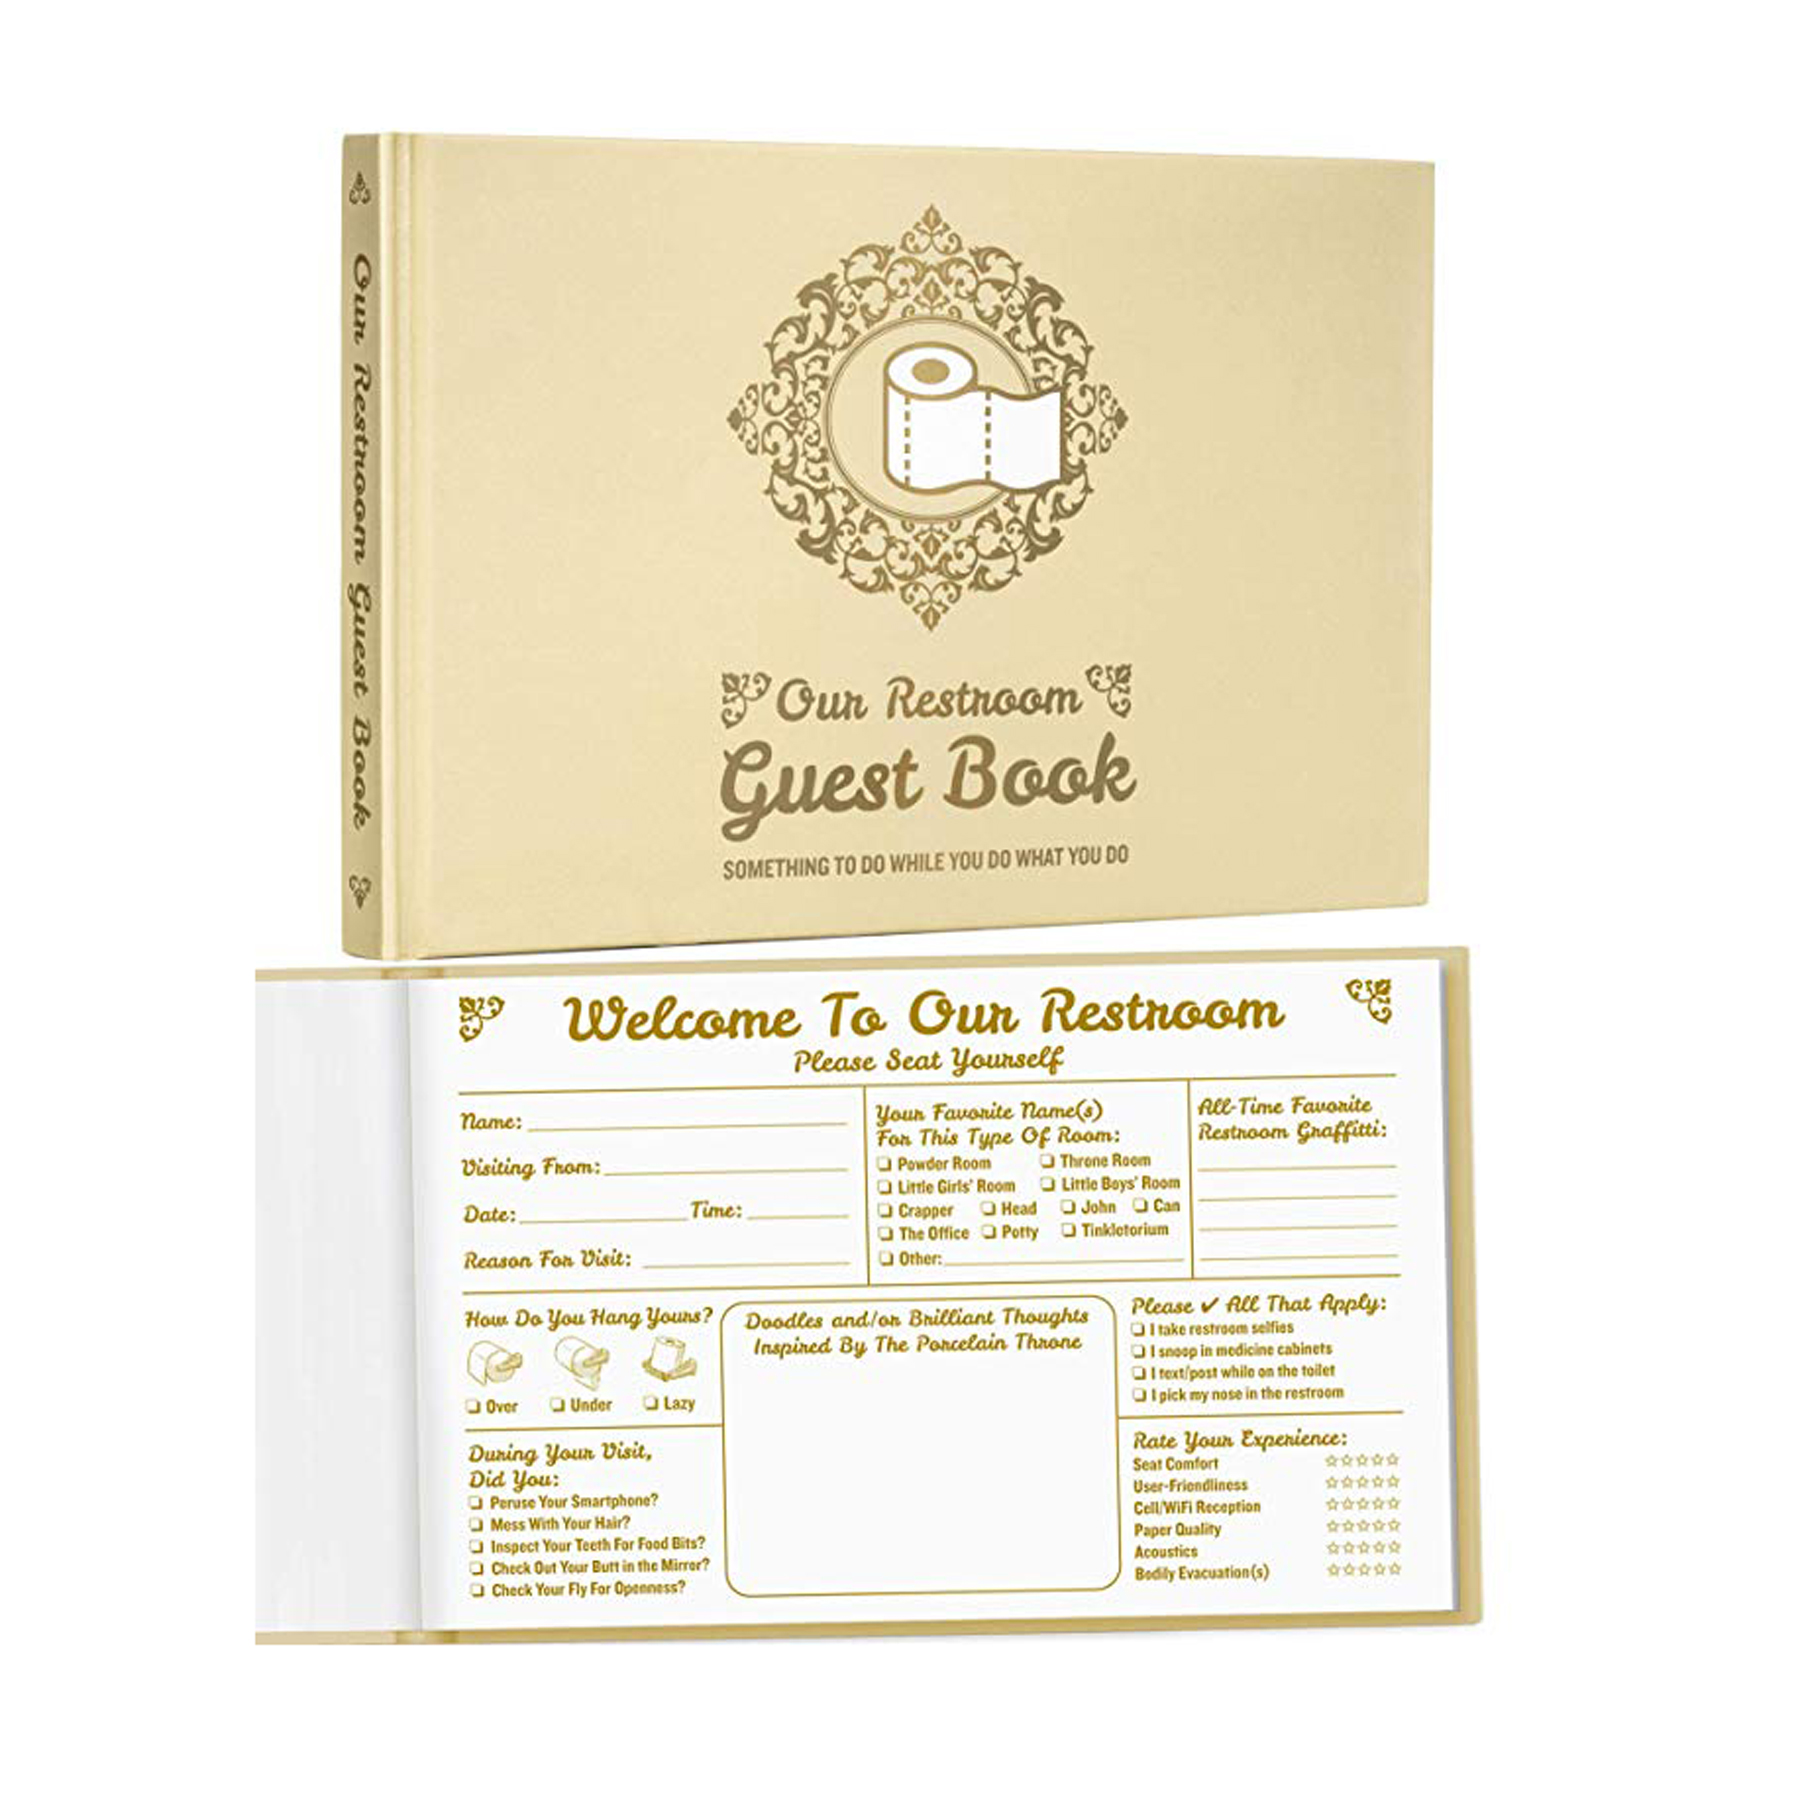 Funny Gifts for Men - Maad Bathroom Guest Book